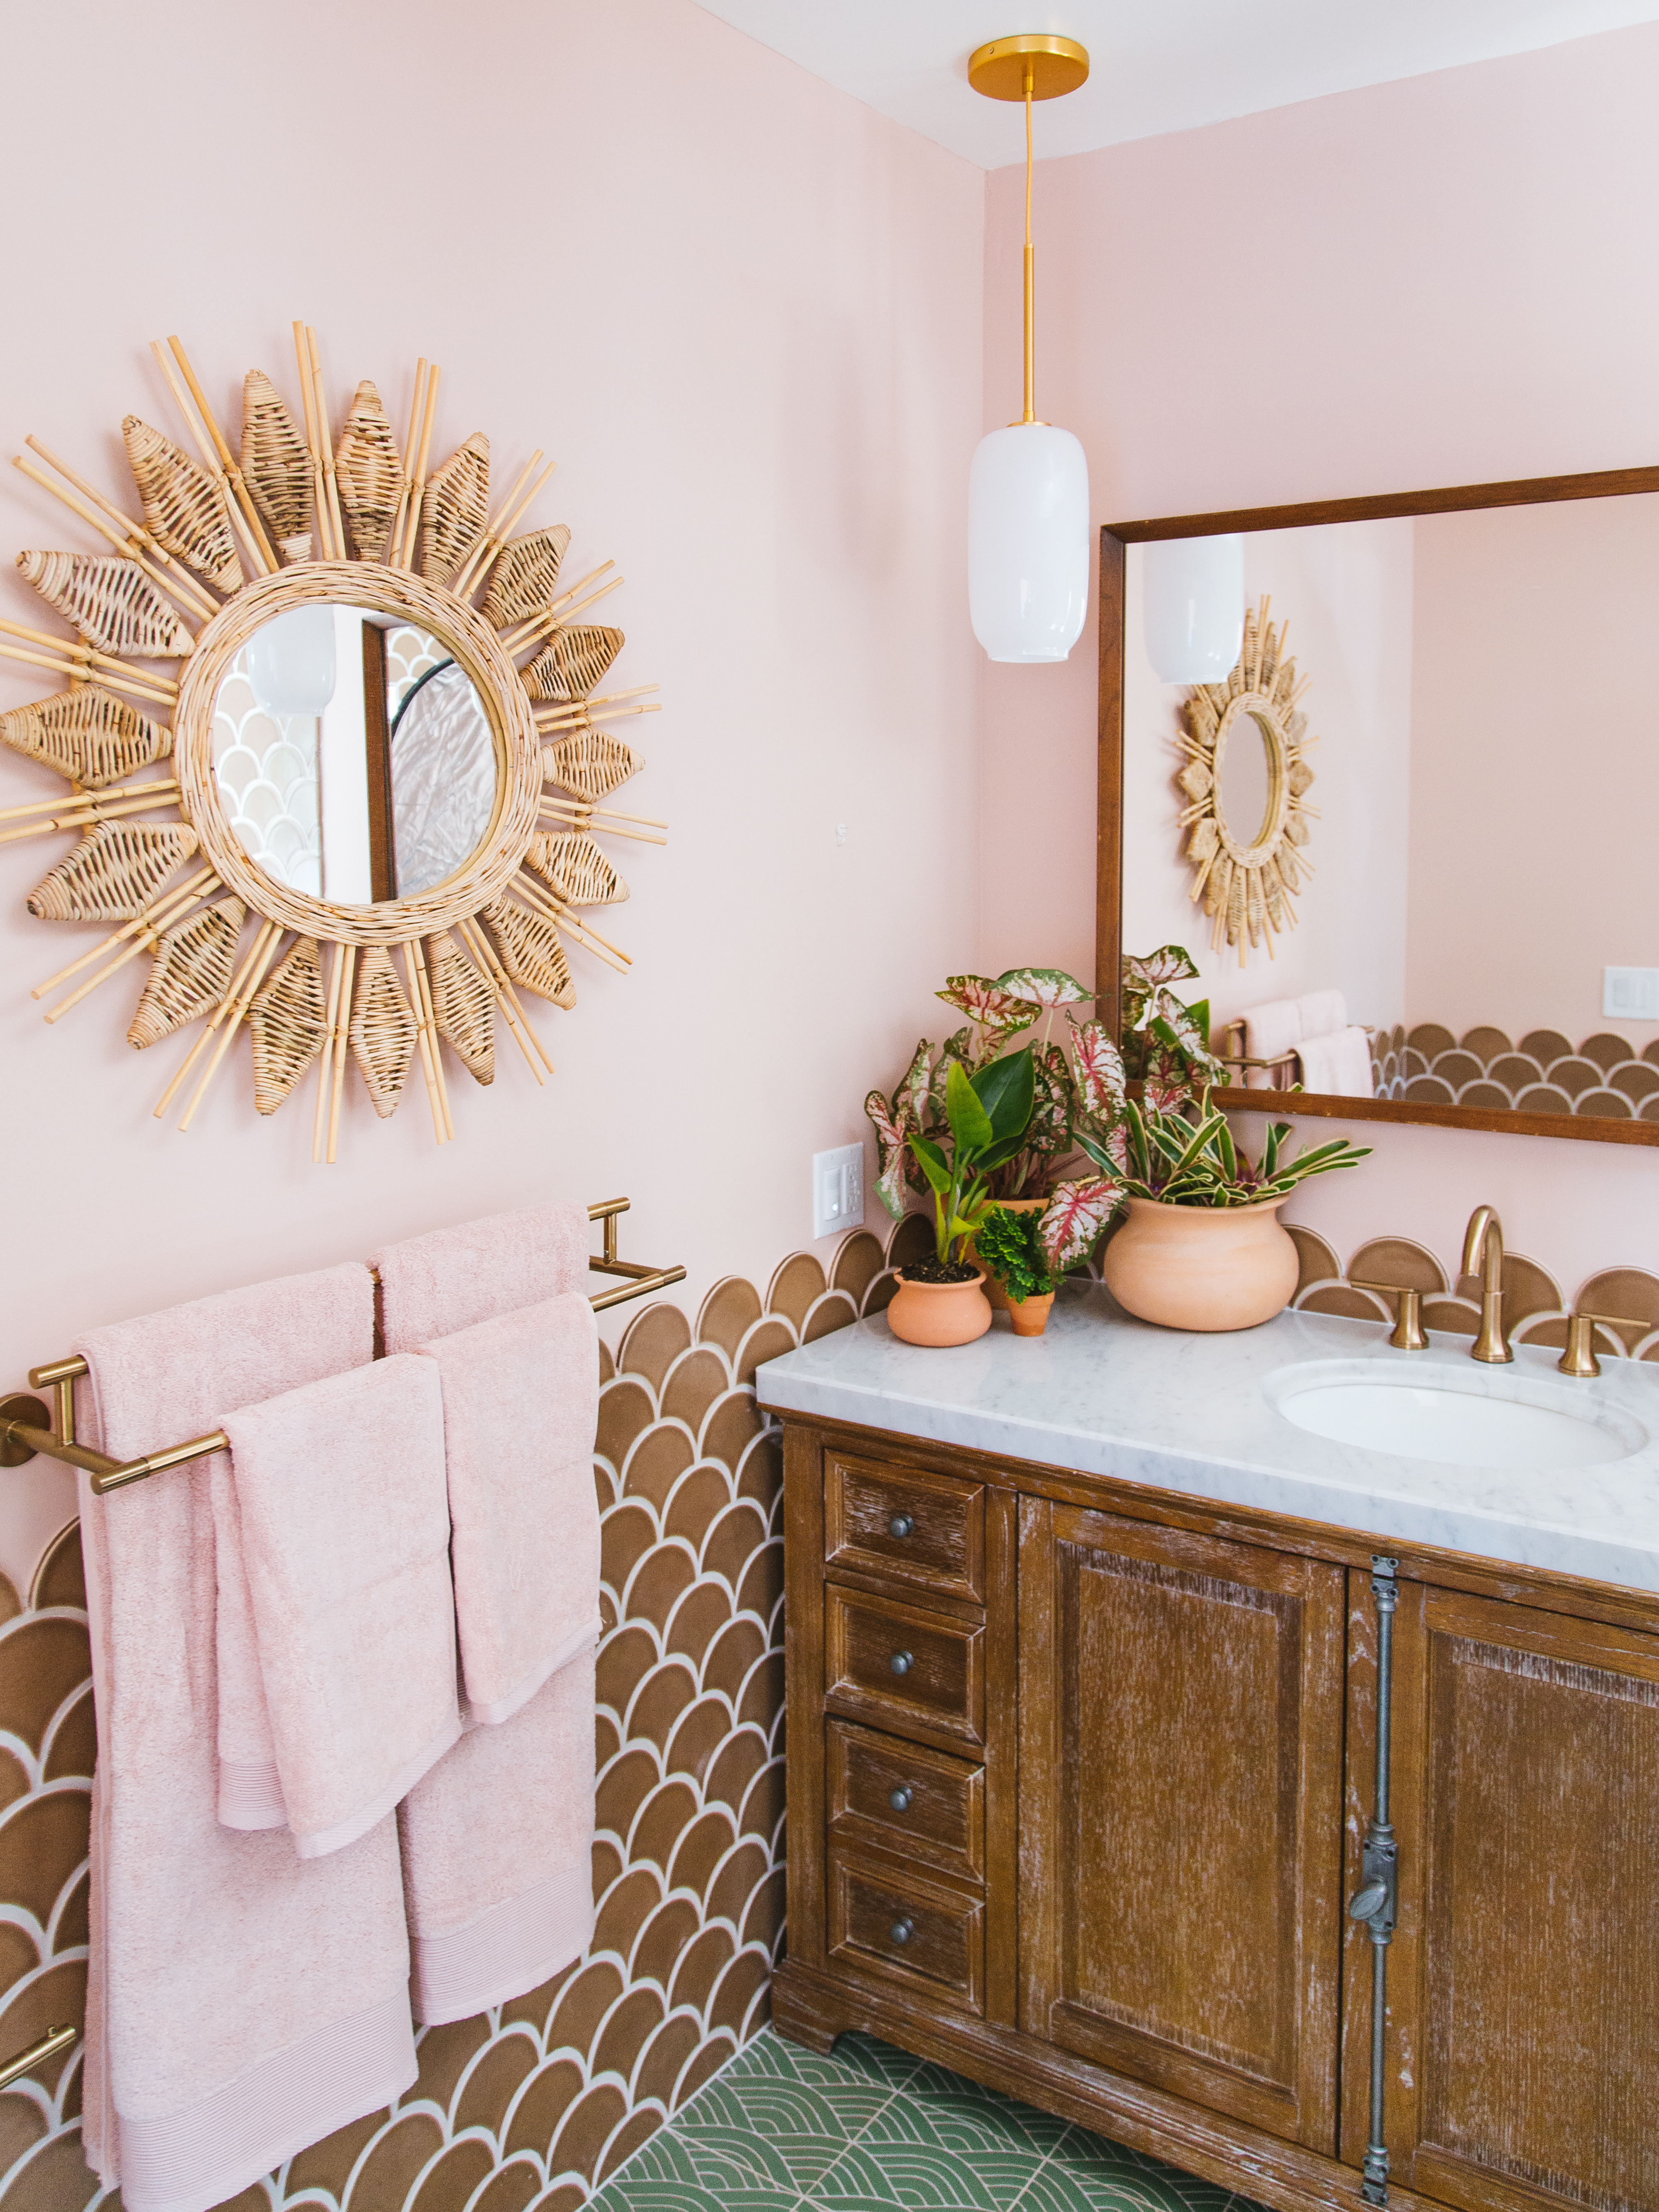 Q3_2018_image_residential_influencer_full-rights_Justina_Faith_Blakeney_parents_condo_masterbath_wall_tile_nutmeg_ogee_drop_floor_handpainted_summit_green_motif_vanity_detail.jpg?mtime=20181008111308#asset:420151